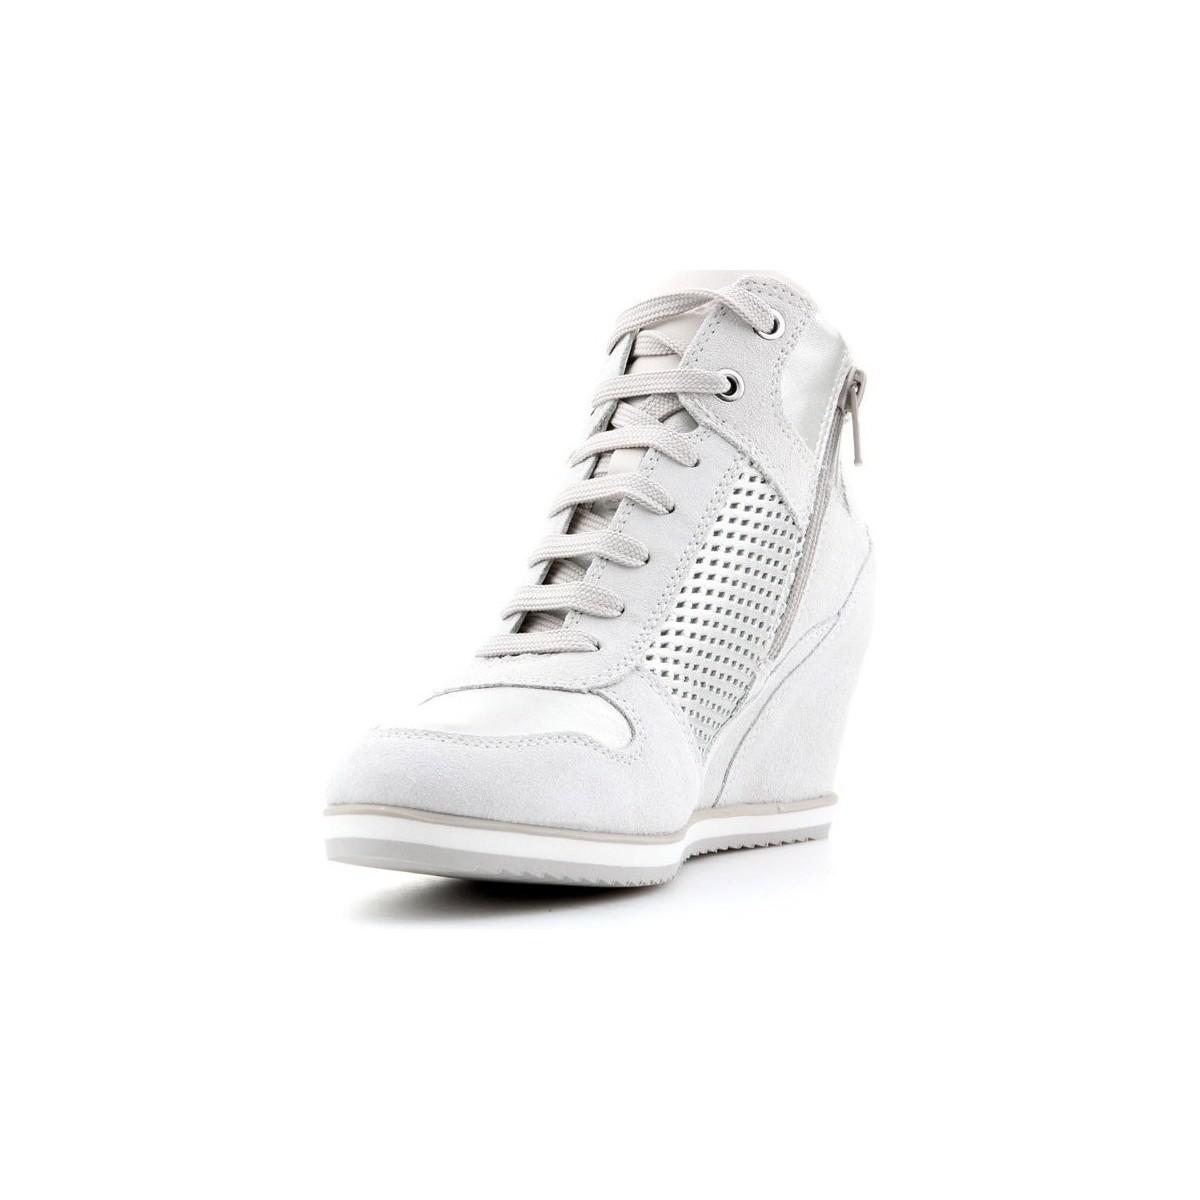 Geox D Illusion B Women's Shoes (high-top Trainers) In Silver in Metallic